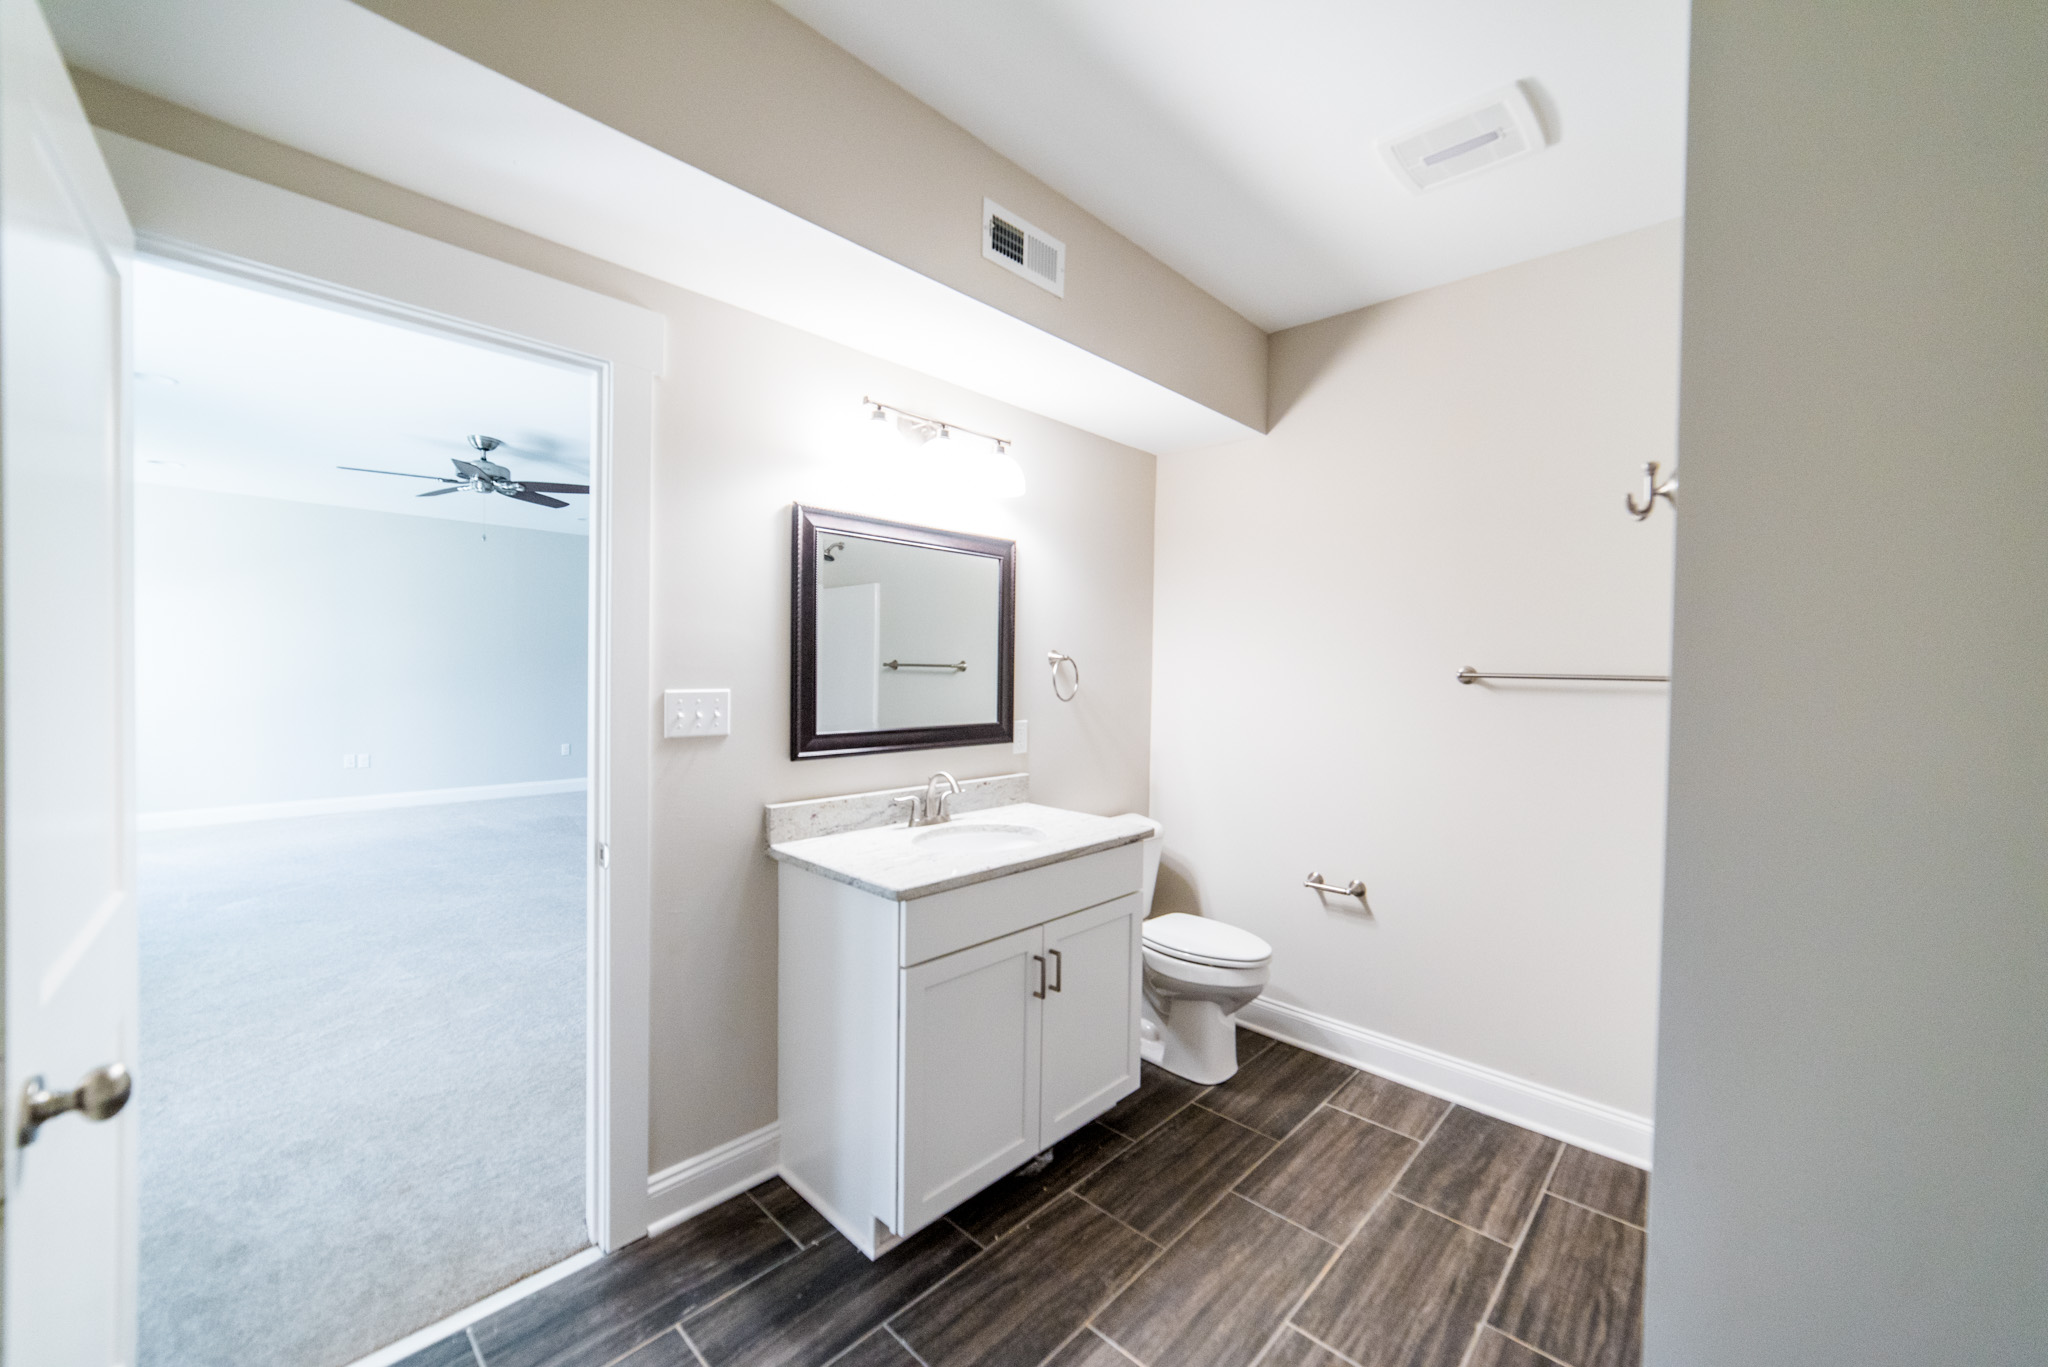 Bathroom (basement)